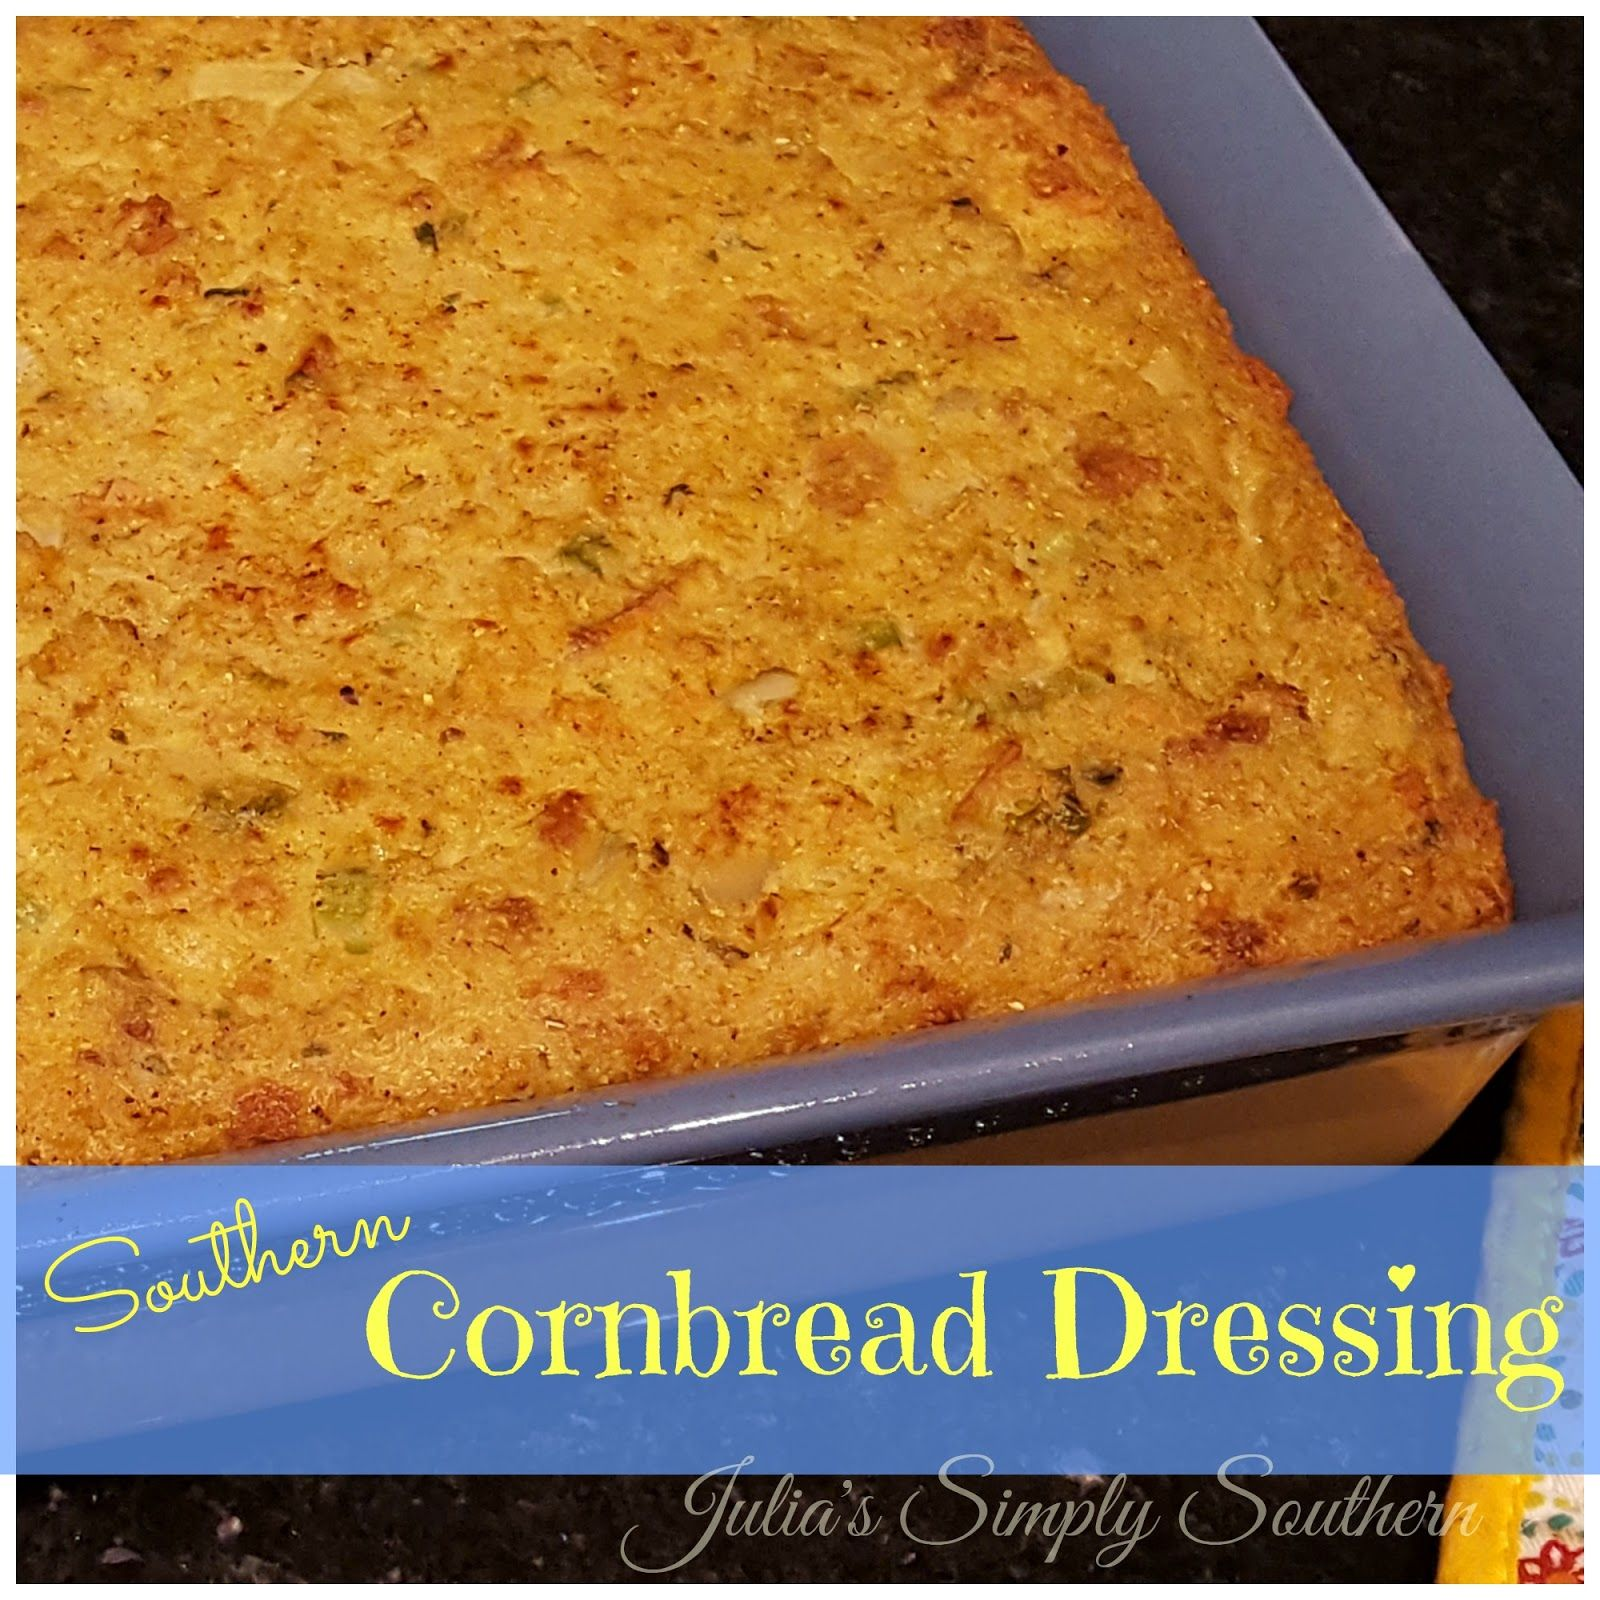 Southern Cornbread Dressing, Stuffing, Dressing, Thanksgiving, Christmas, Traditional, Southern Cooking, Turkey, stuffing, Awesome, Recipe, Traditional #cornbreaddressing